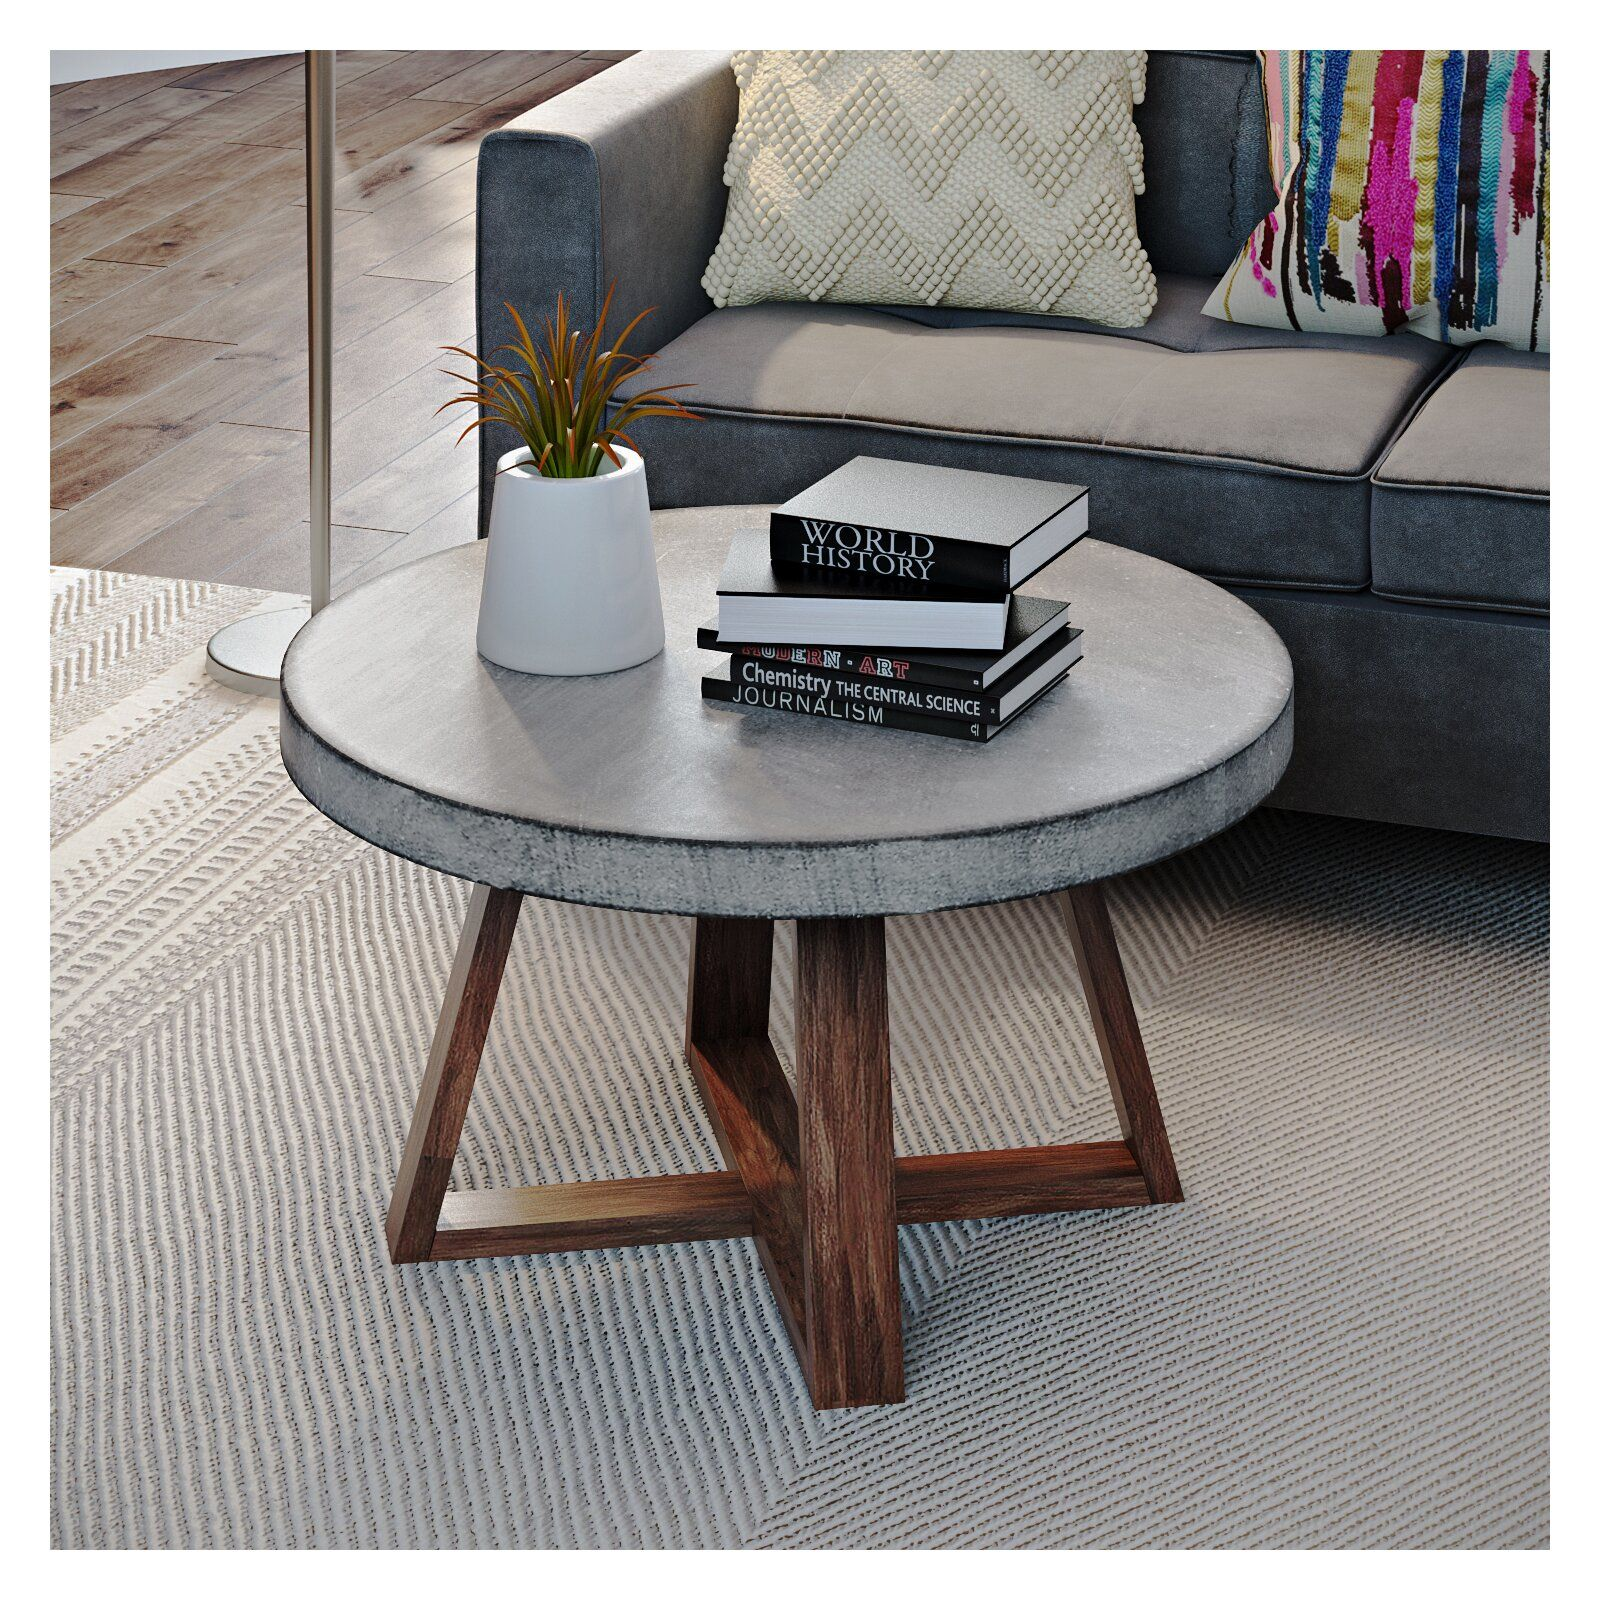 Balch Coffee Table Coffee Table Concrete Coffee Table Living Room Coffee Table [ 1600 x 1600 Pixel ]